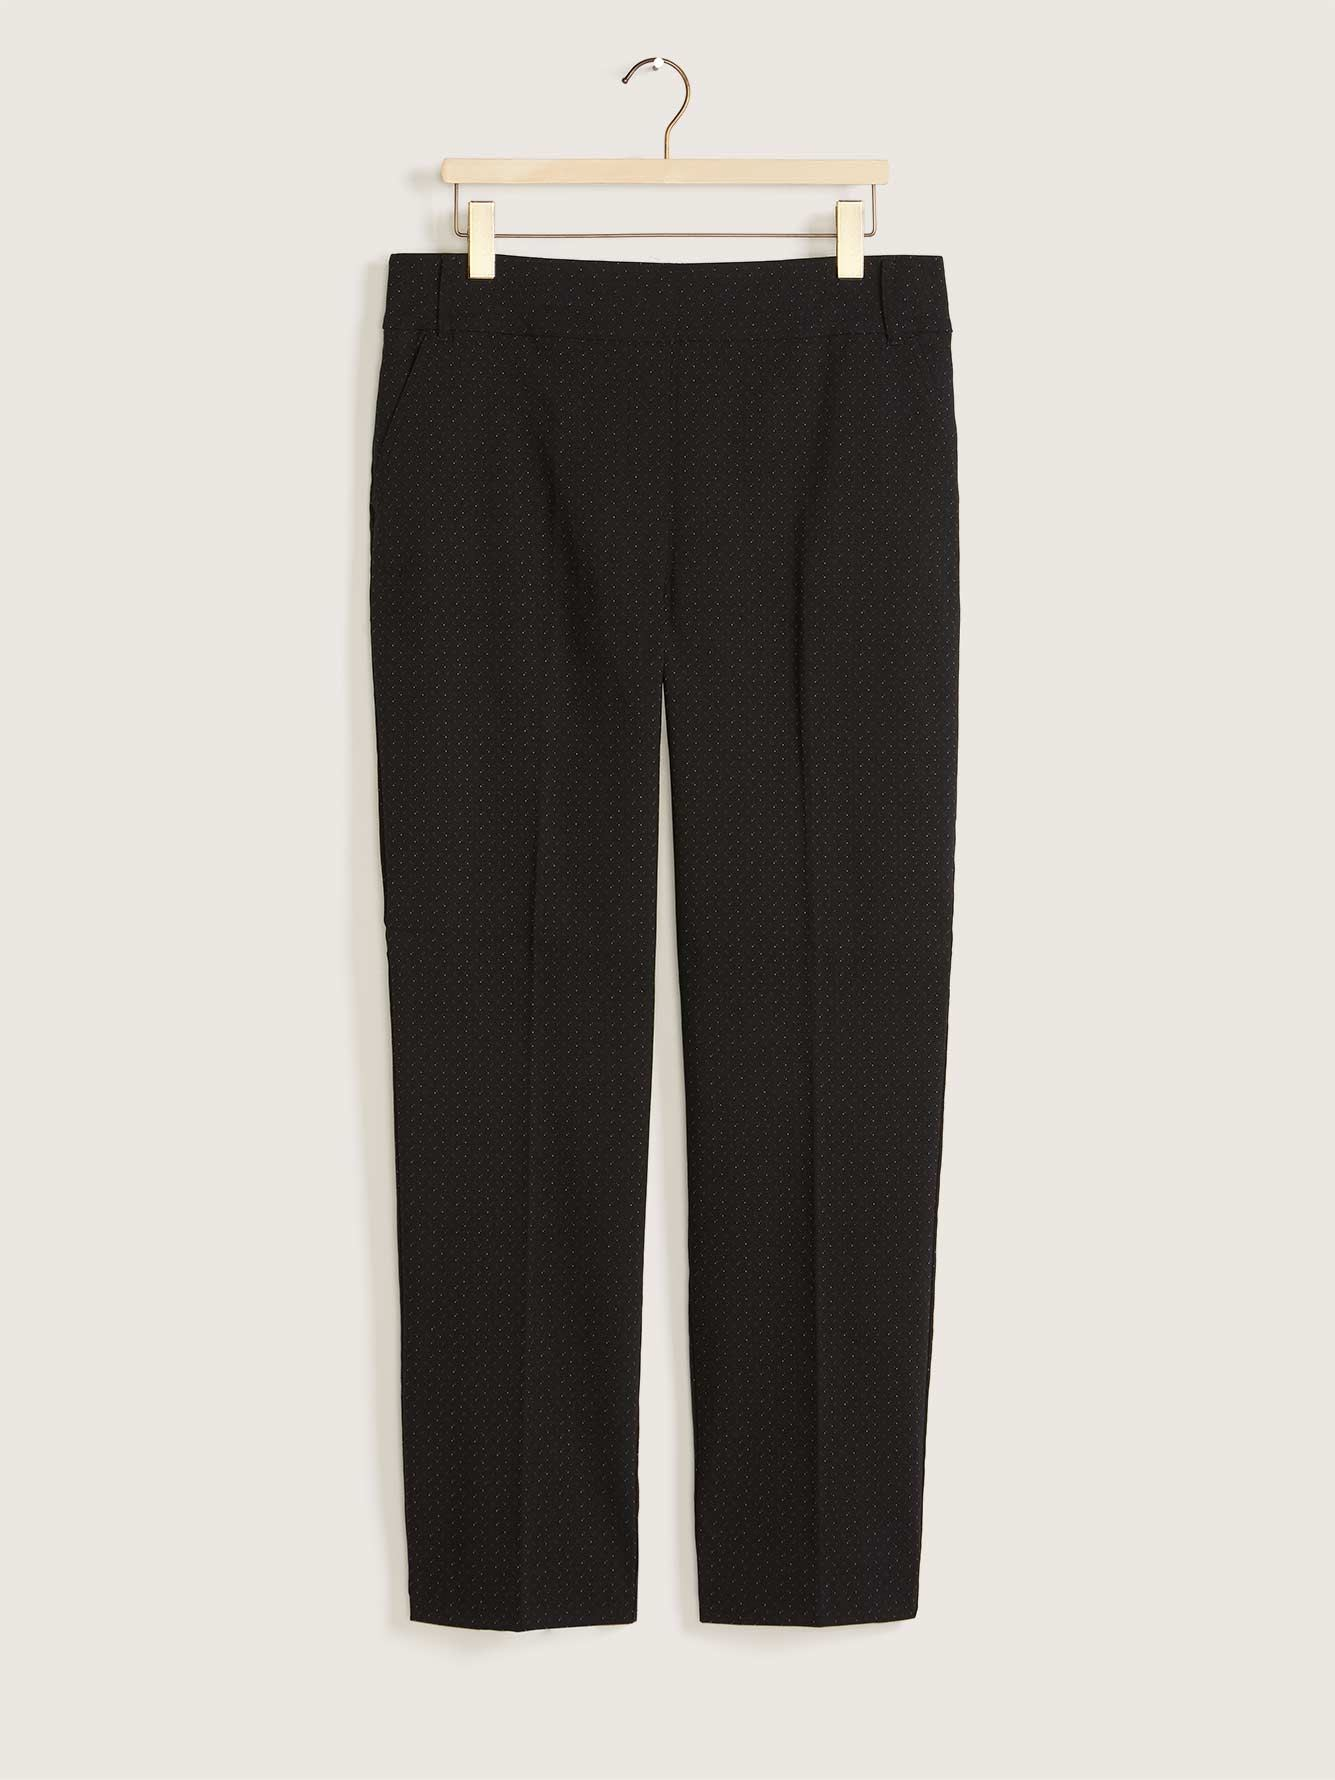 Petite, Savvy Universal Fit Straight Leg Pant - In Every Story